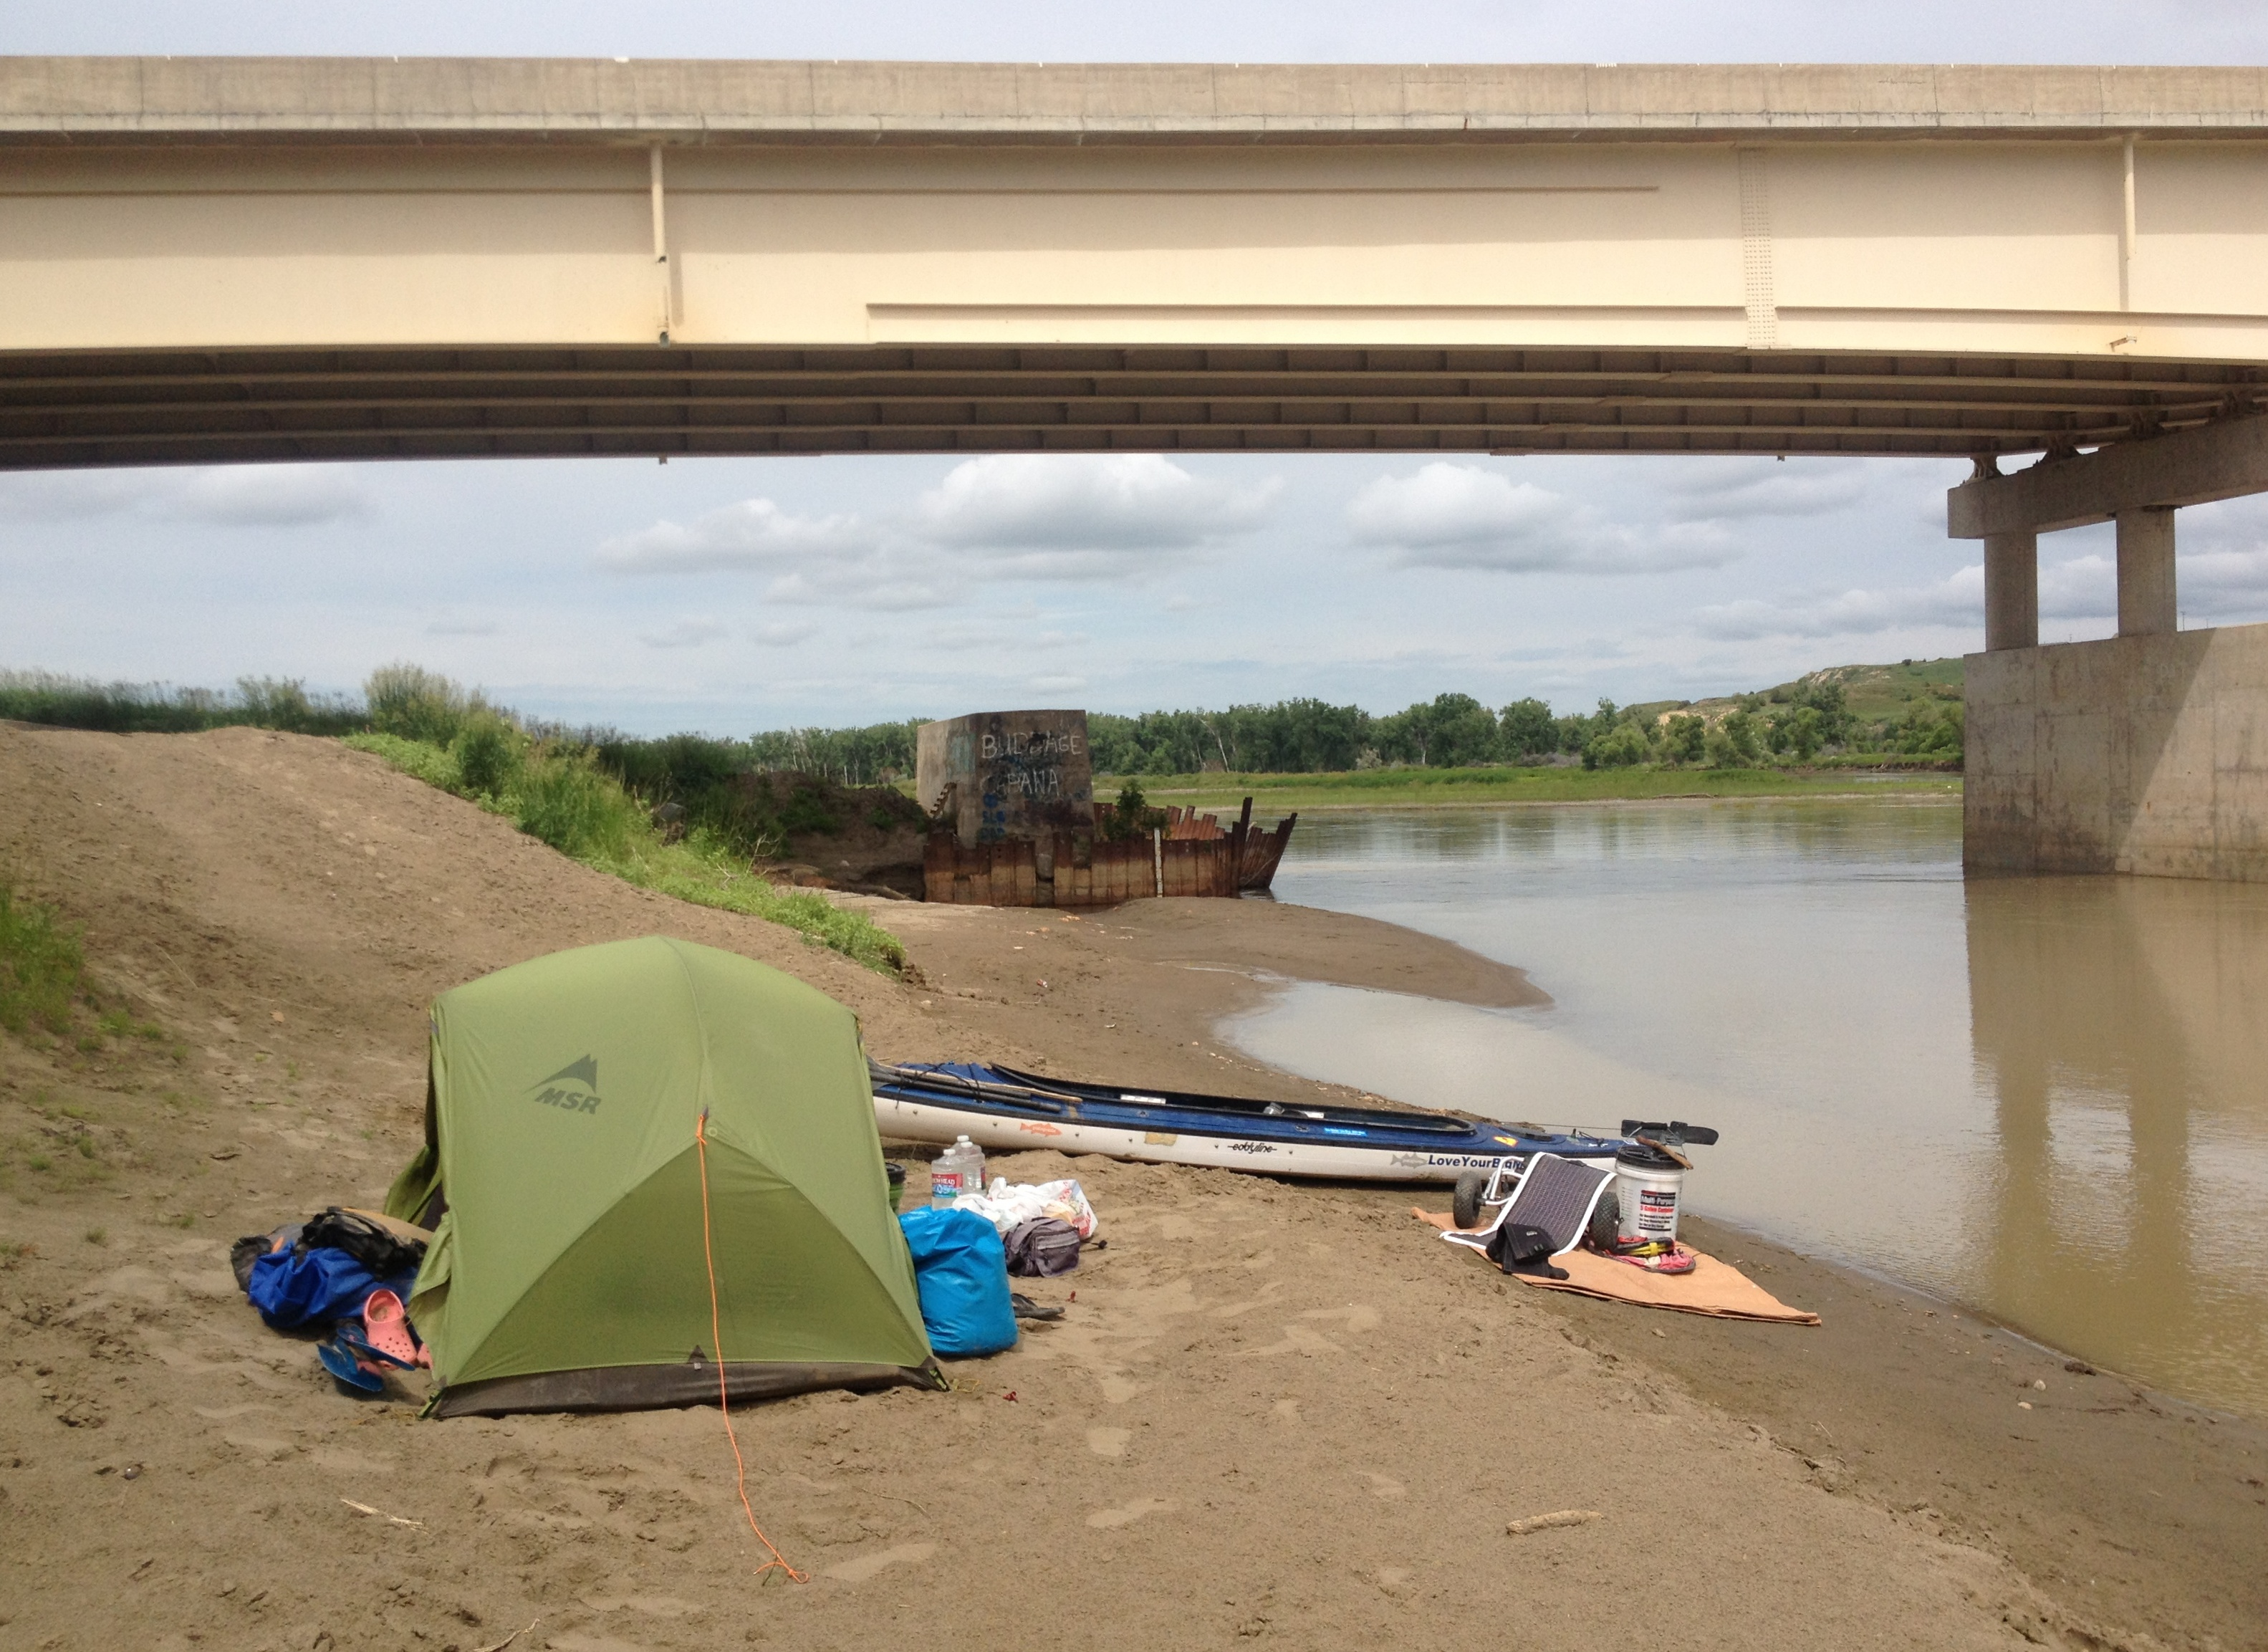 Highway 16 Culbertson Bridge camp